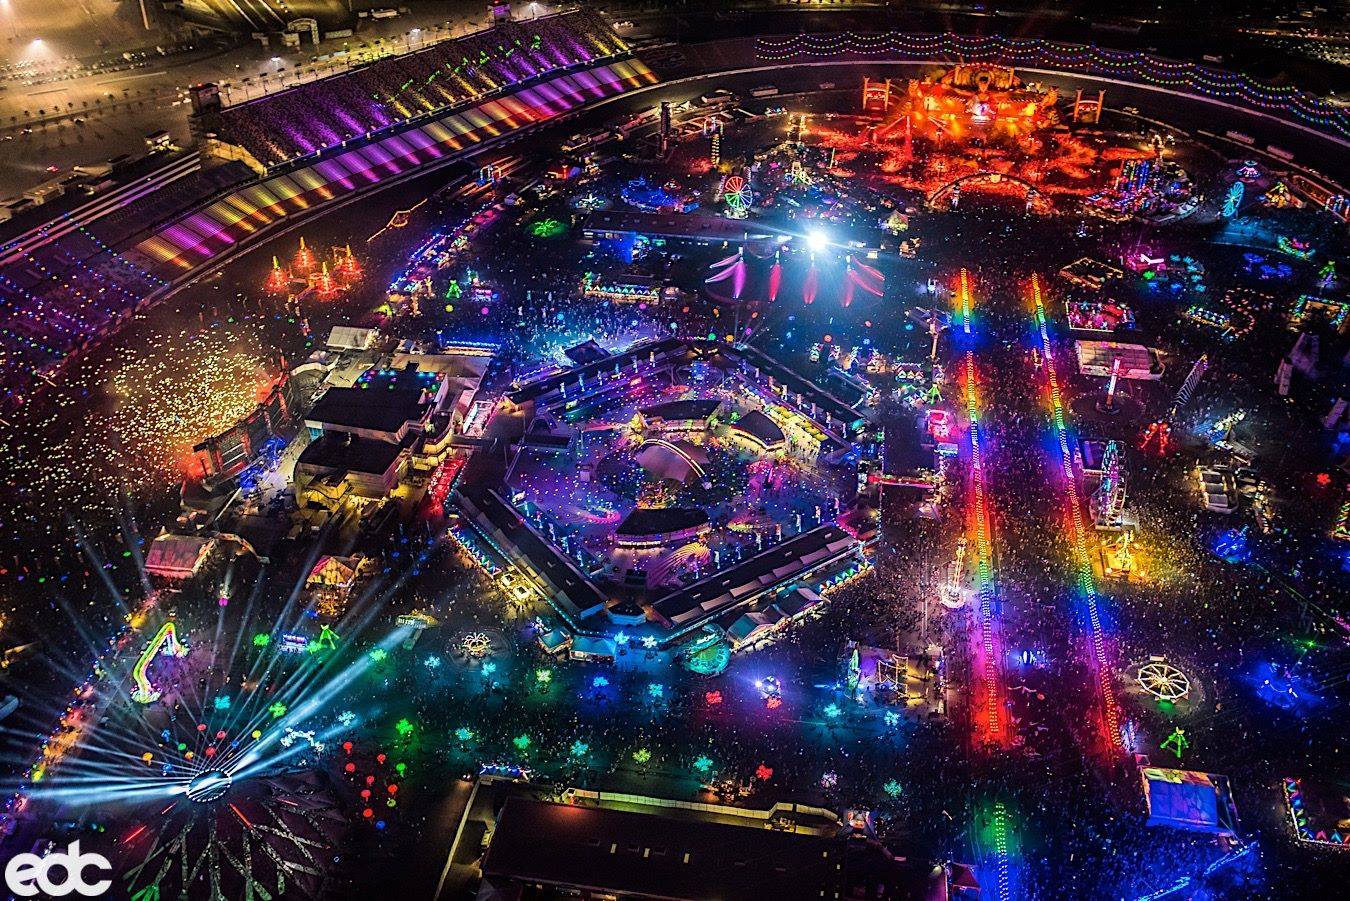 Fly To EDC Las Vegas From Los Angeles From $36 One Way